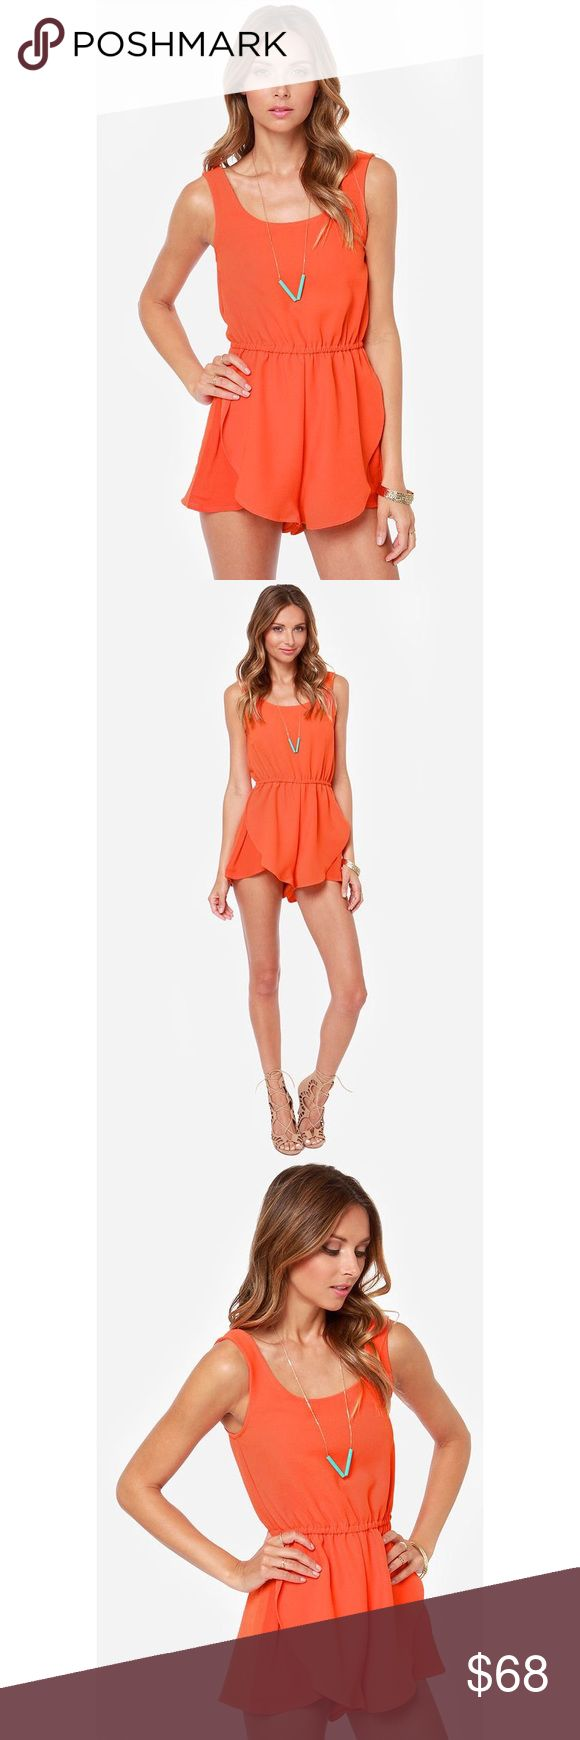 """MINKPINK Coral Tulip Romper - NEVER WORN Go after what you want you want most in the Mink Pink The Seeker Orange Romper! A medium weight woven material in bright orange forms a sleeveless bodice with a sweet scoop neck. An elasticized waist is met by attached shorts with flirty tulip style hems. Unlined. Model is 5'9"""" and is wearing a size X-small. 100% Viscose. Machine Wash Cold. Tag says large but can fit a medium  MINKPINK Pants Jumpsuits & Rompers"""